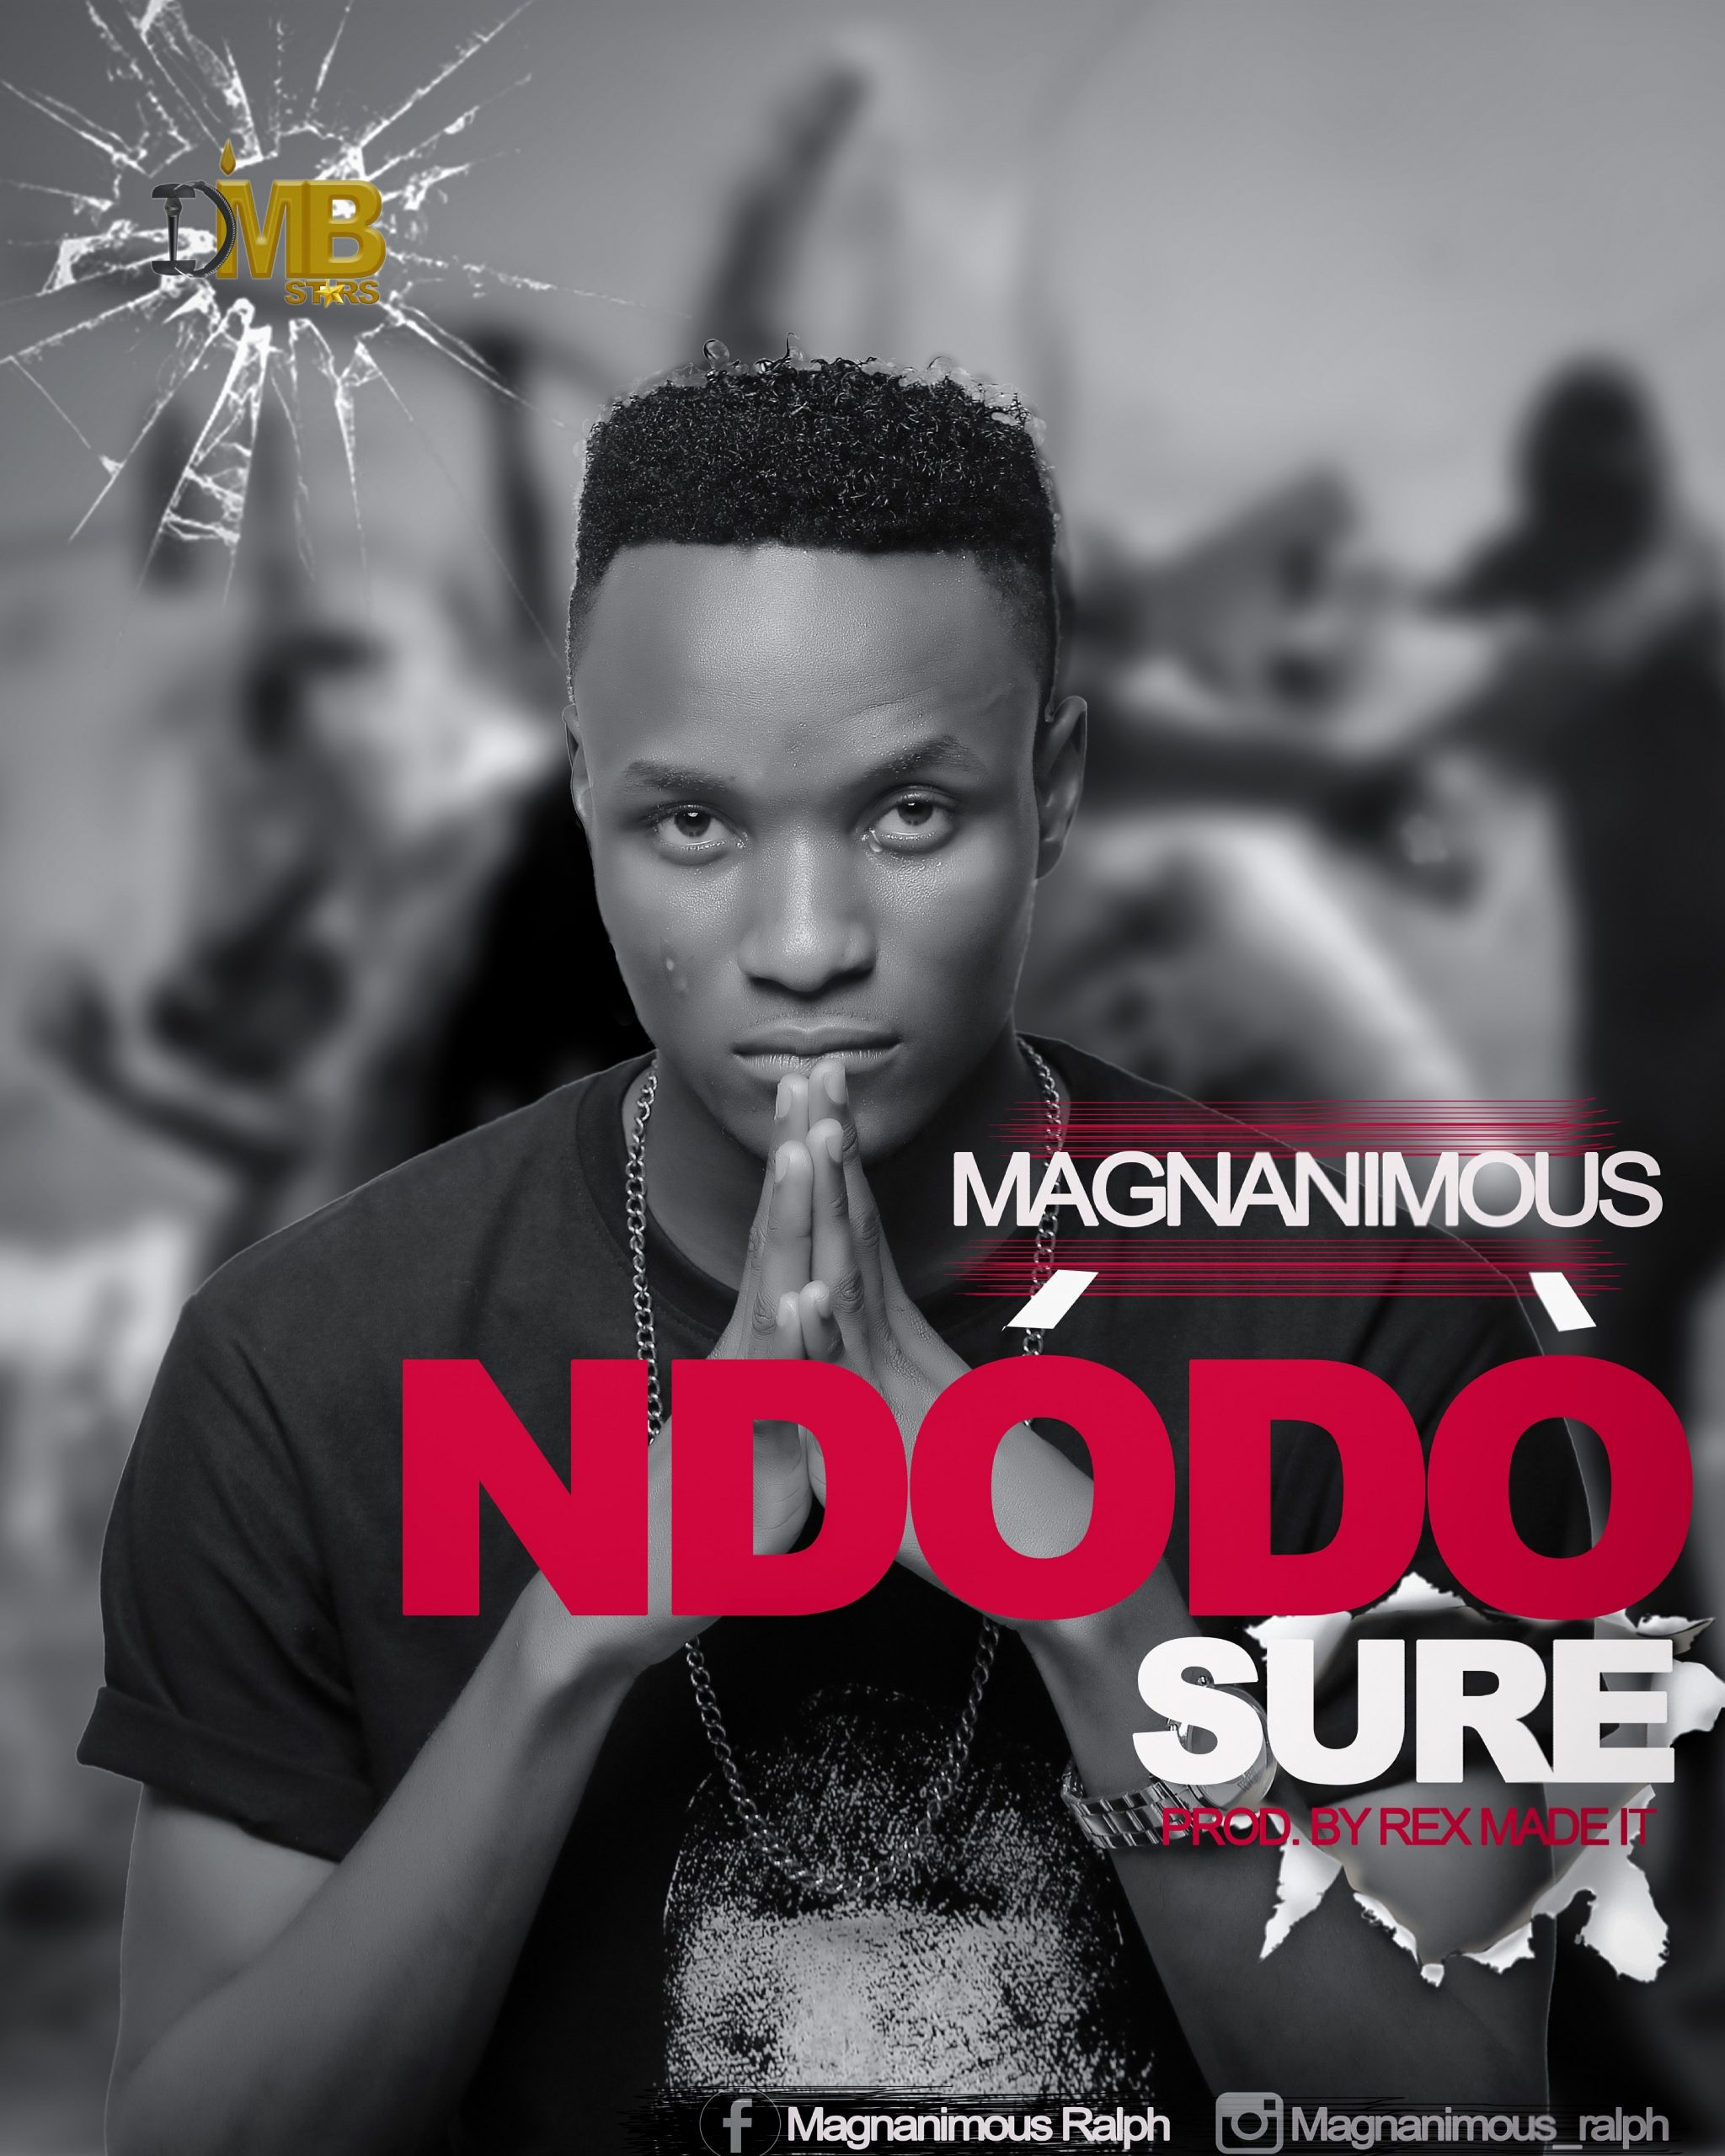 Download Ndodo Sure by Magnanimous